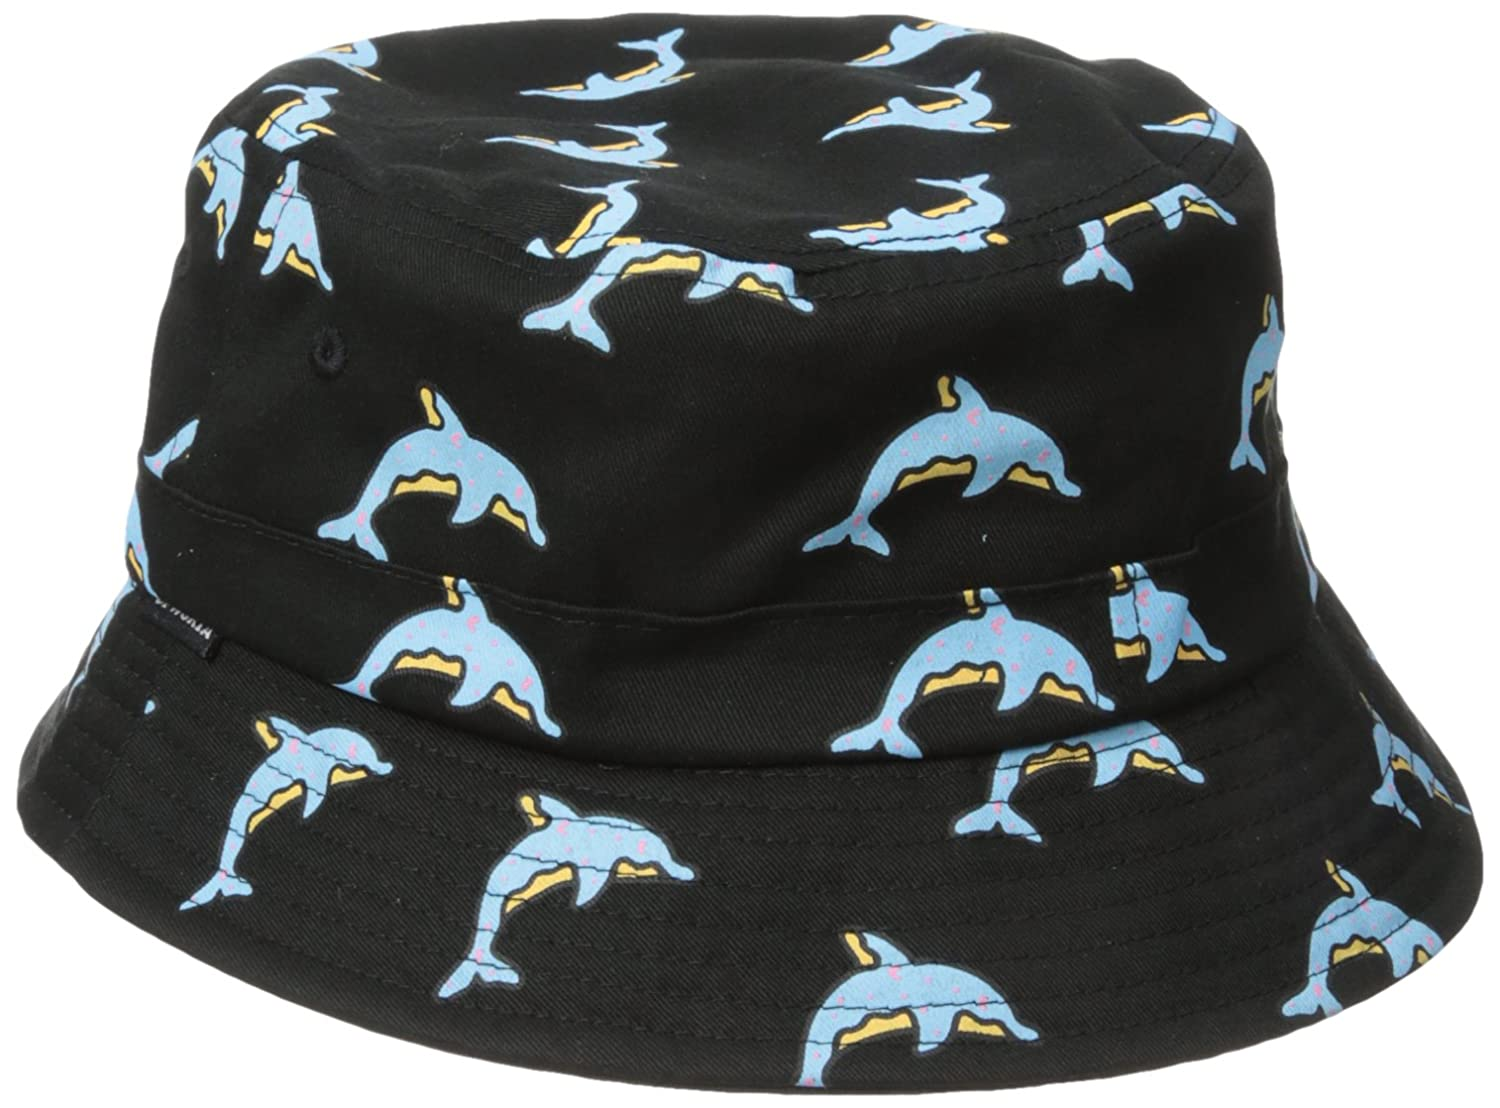 051a206f1b05 Odd Future Men s Dolphin Donut All Over Bucket Hat